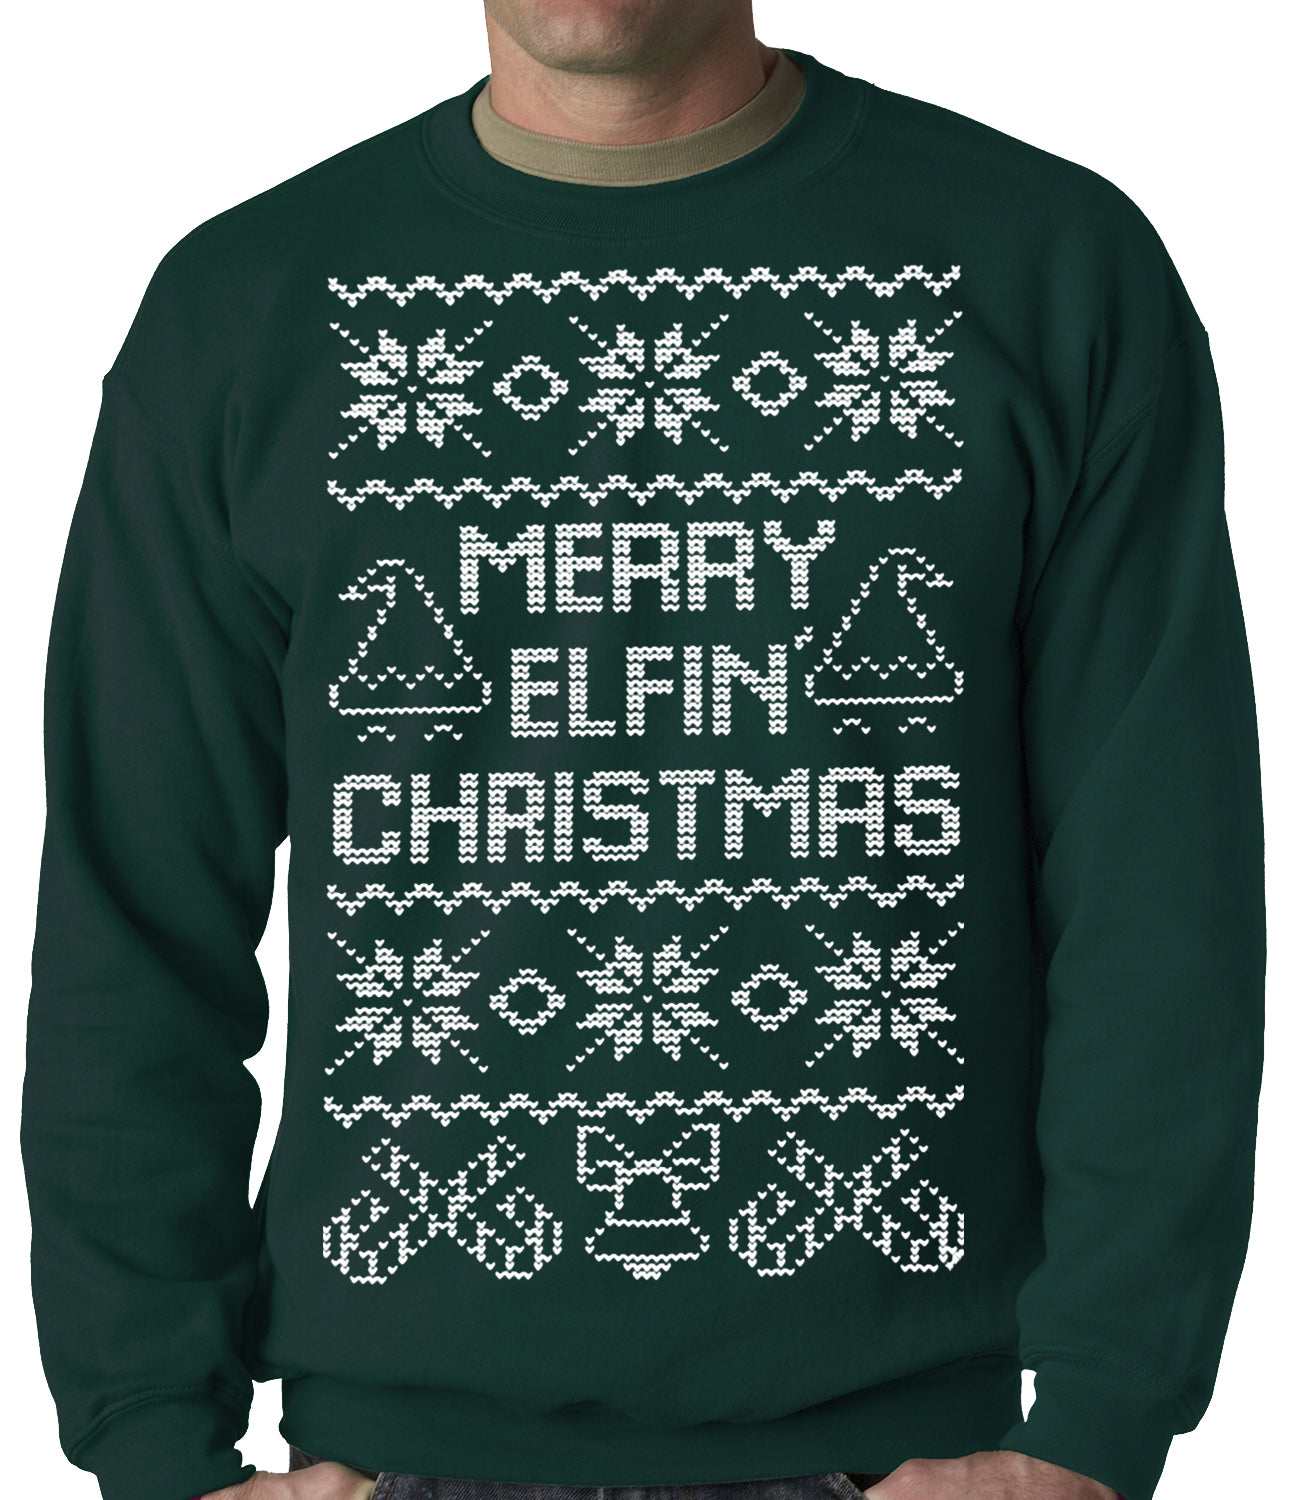 Funny Christmas Sweater.Ugly Christmas Sweater Merry Elfin Christmas Funny Ugly Christmas Adult Crewneck